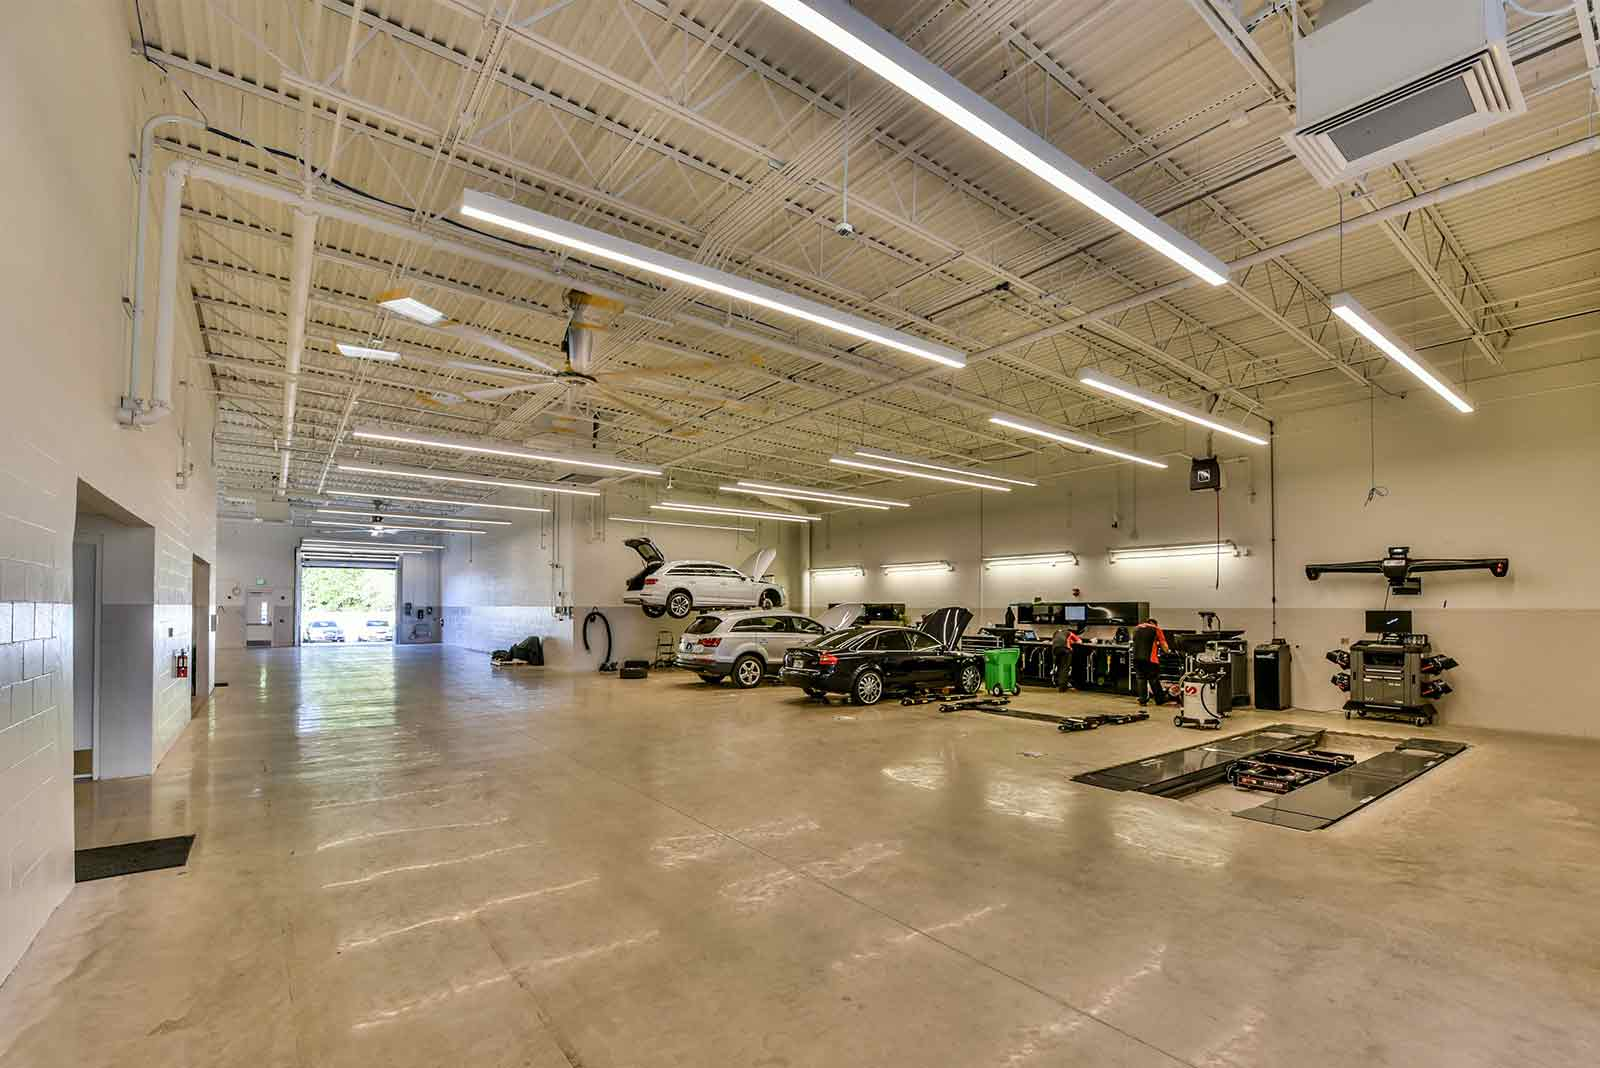 Car service bay furnished with maintenance equipment